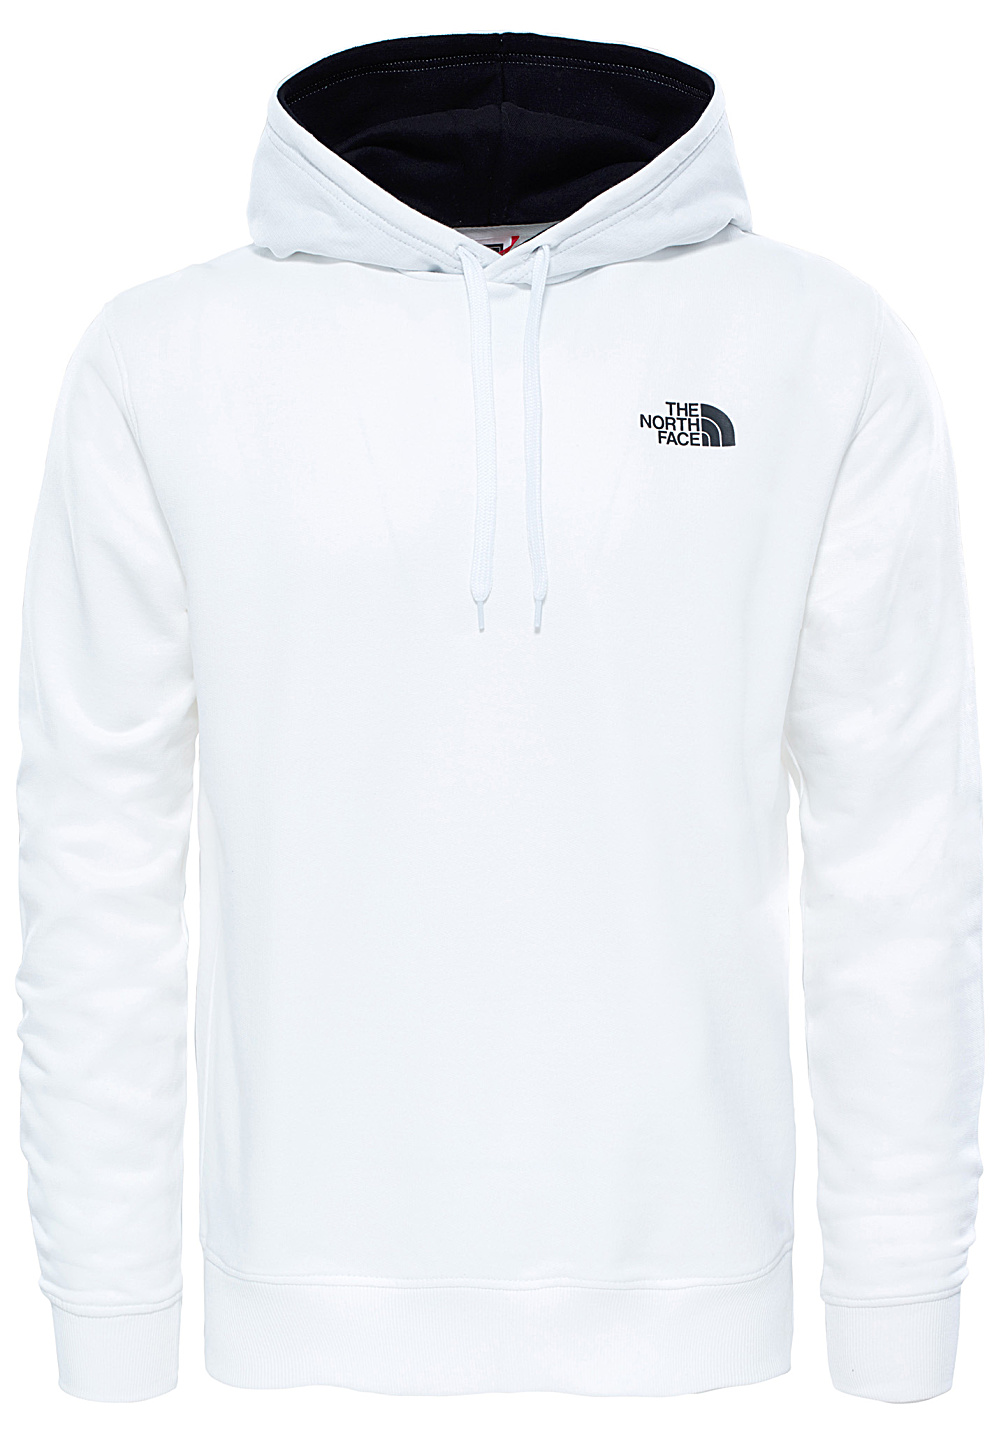 96b1fa8970 Next. Ce produit est actuellement épuisé. THE NORTH FACE. Seasonal Drew  Peak Light - Sweat à capuche ...